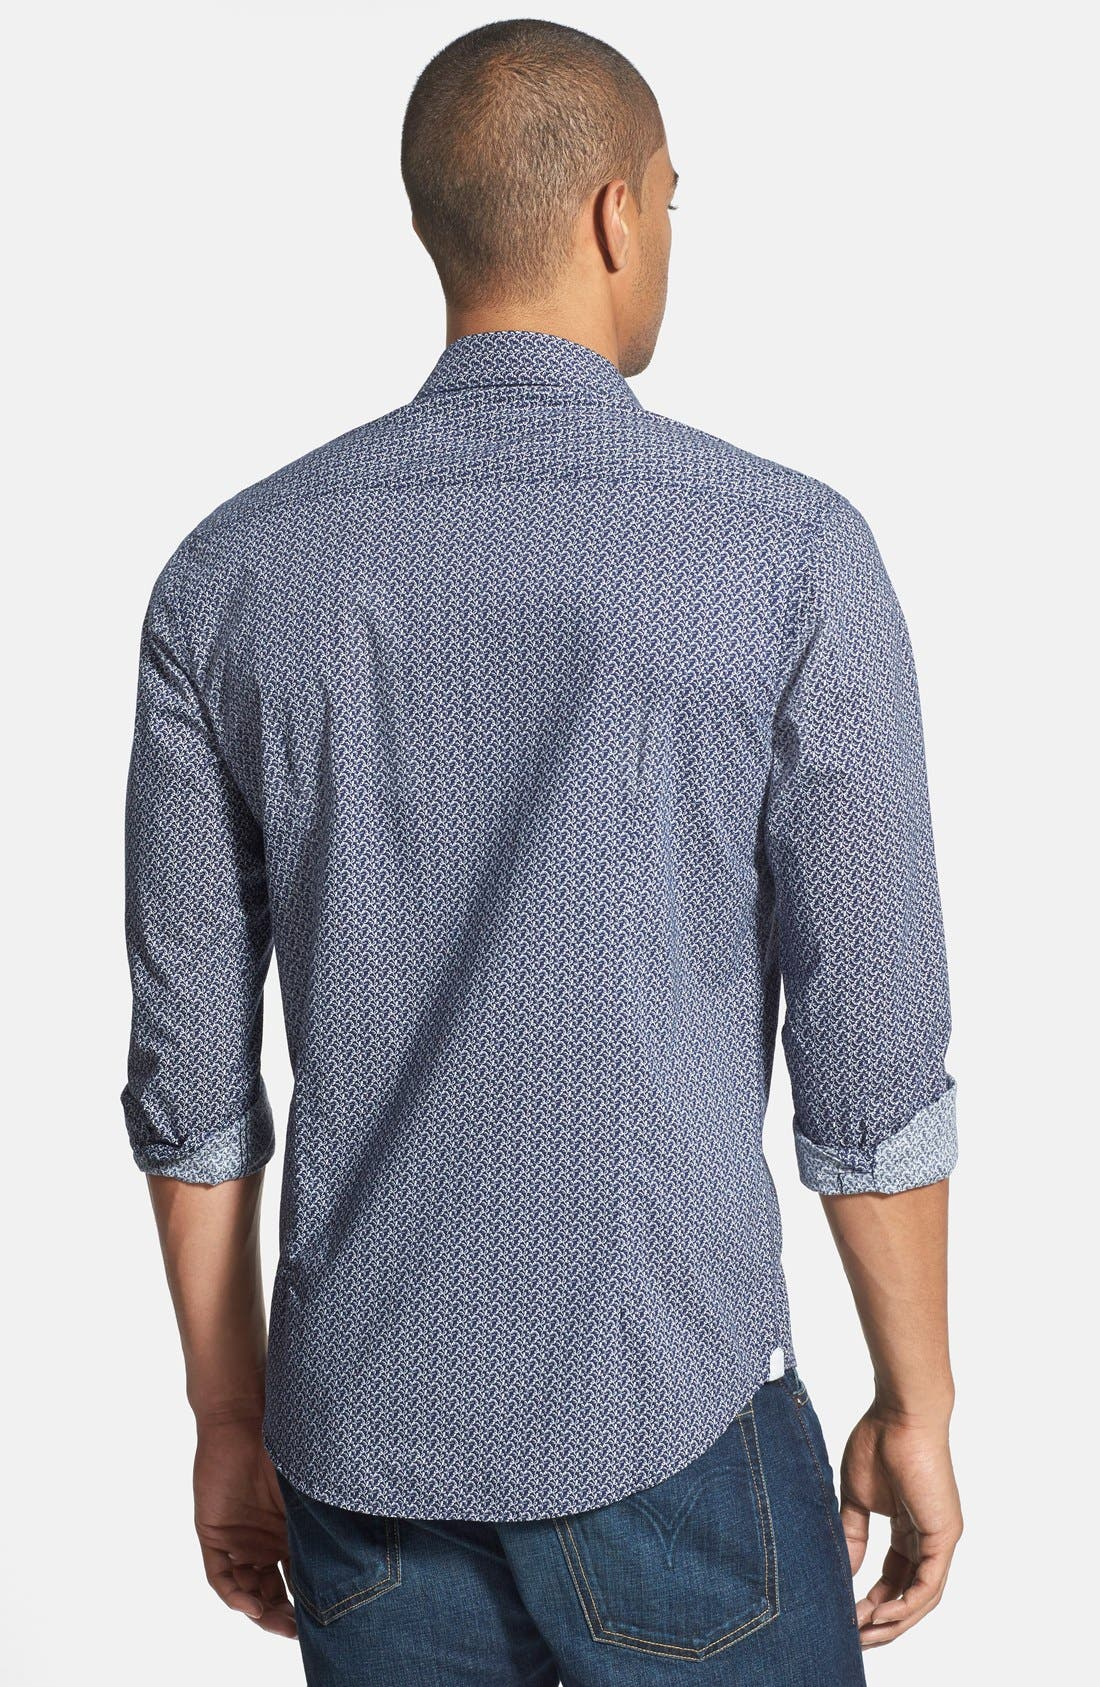 'Blueberry Hill' Trim Fit Print Woven Shirt,                             Alternate thumbnail 2, color,                             410